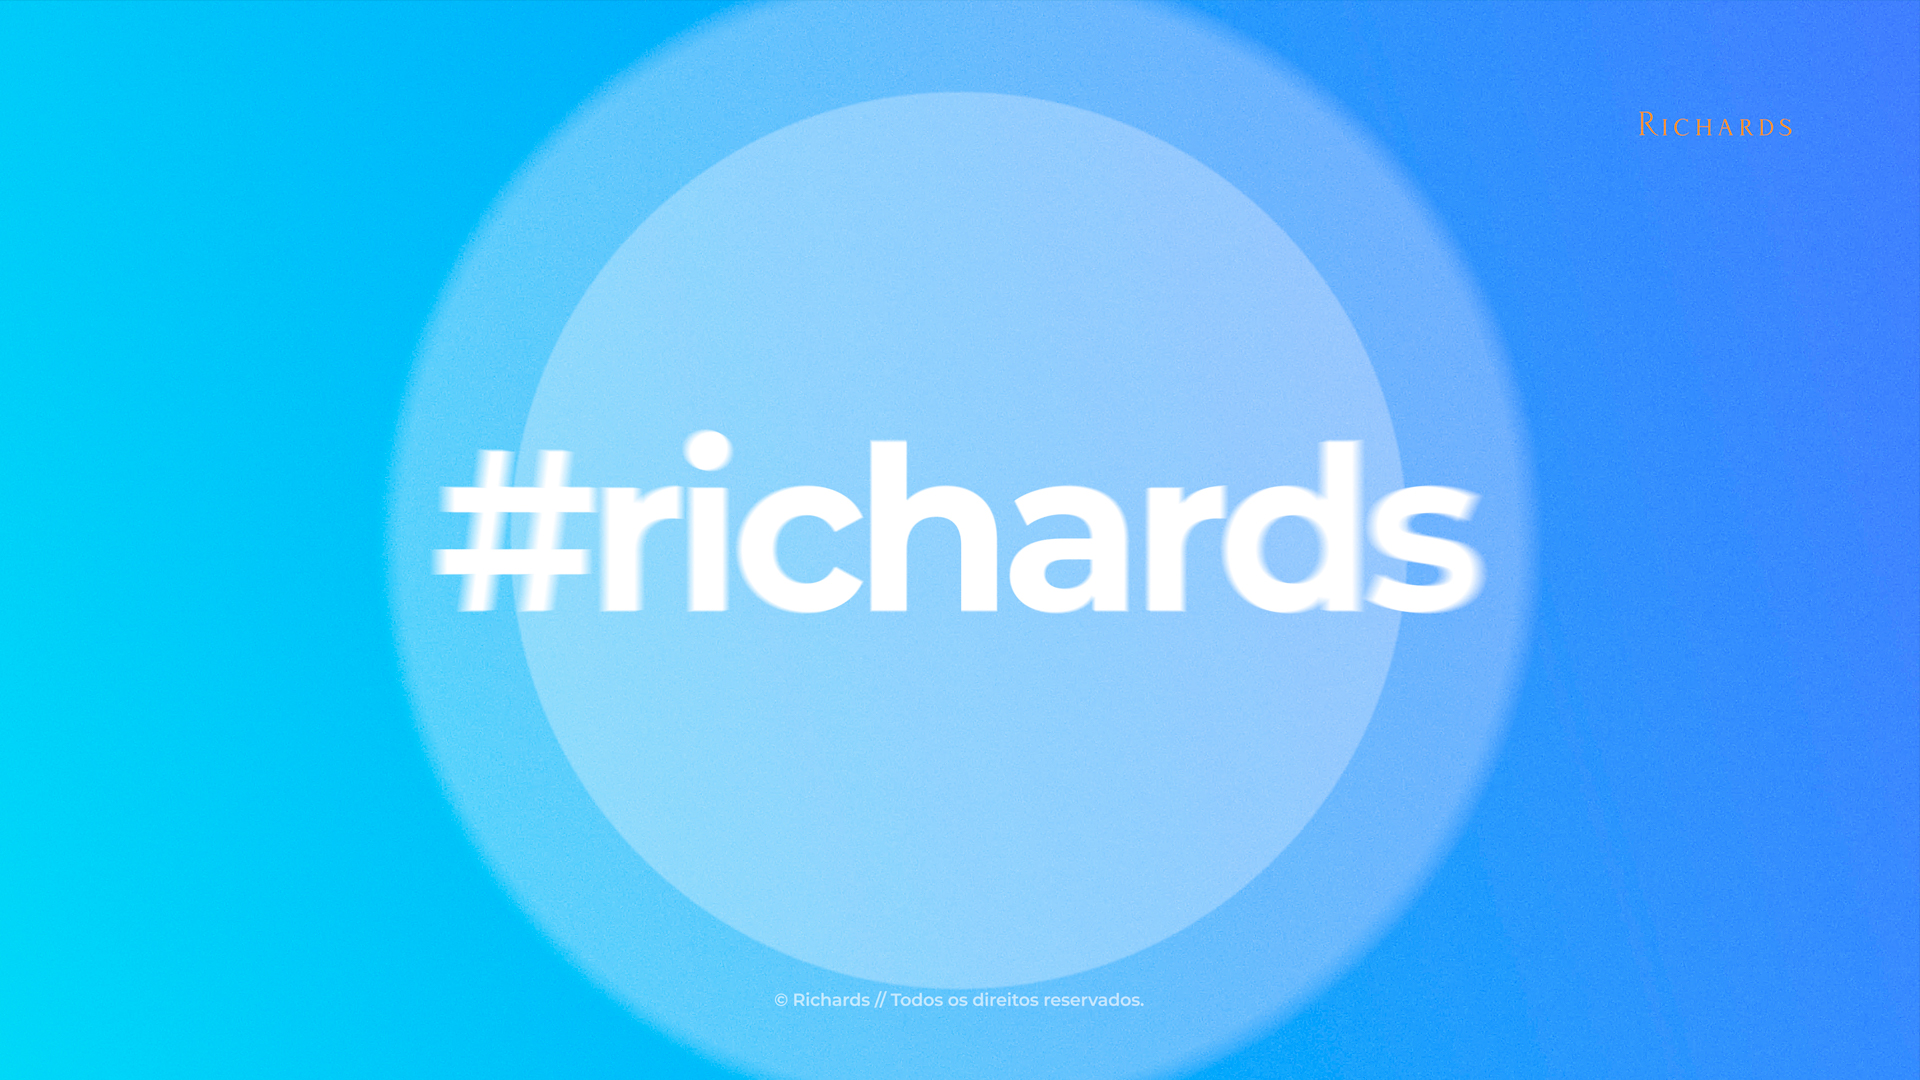 Richards Santos